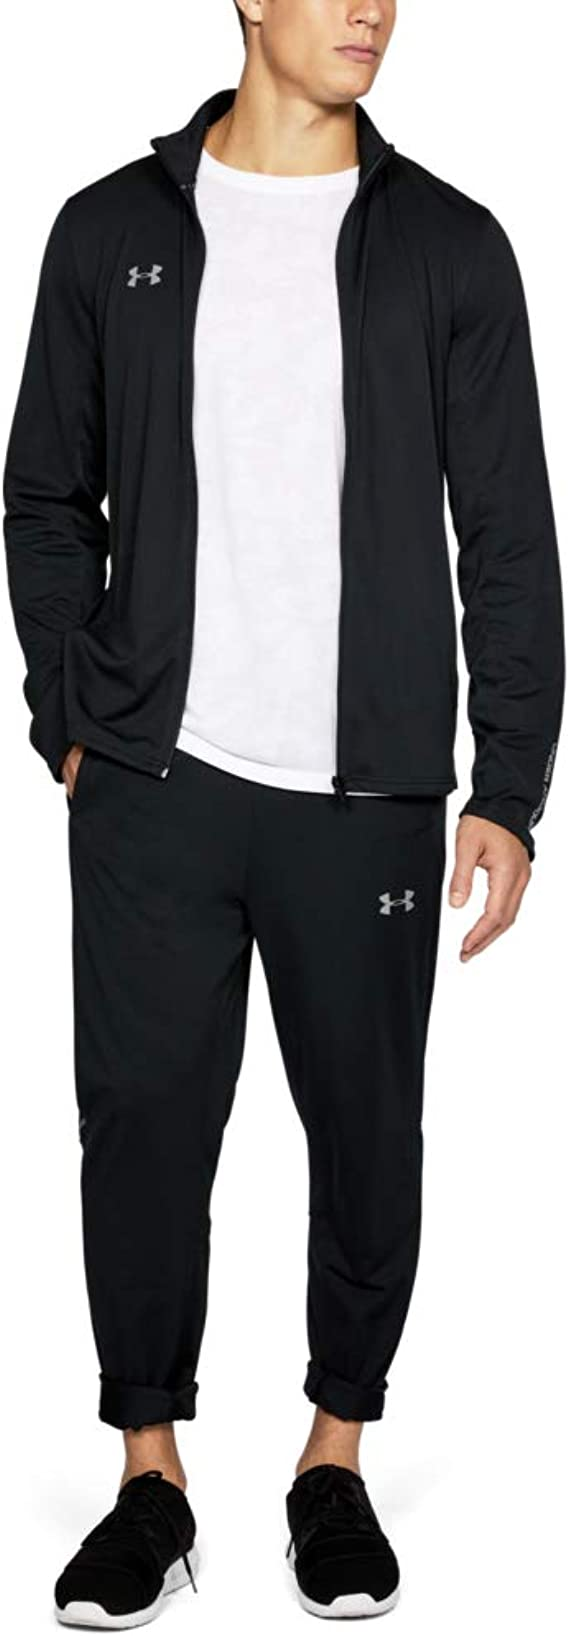 Accesible Sombra arcilla  Chandal under armour | Los mejores chandales.